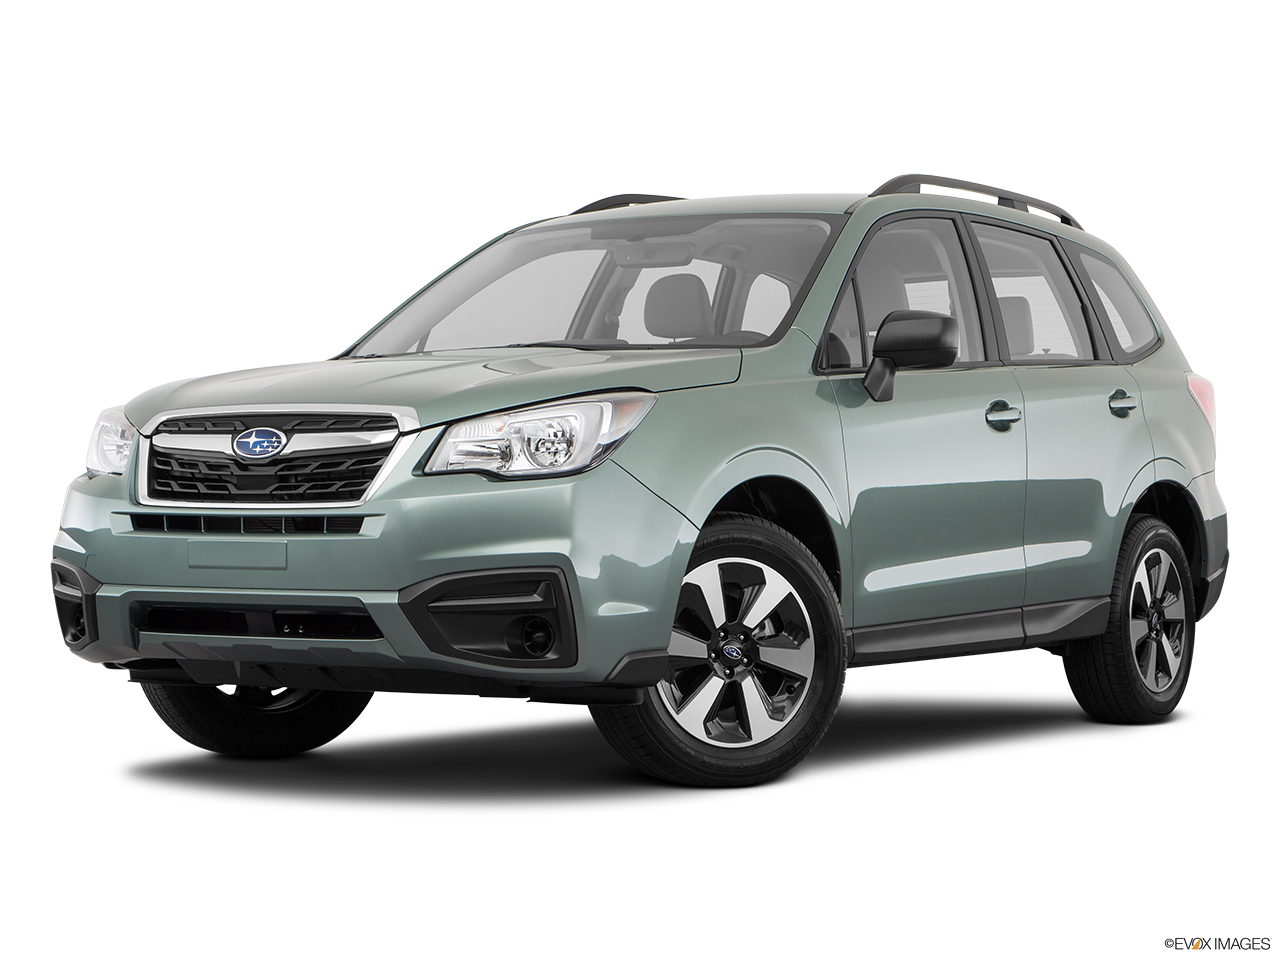 Lease A 2018 Subaru Forester 2 5i Cvt Awd In Canada